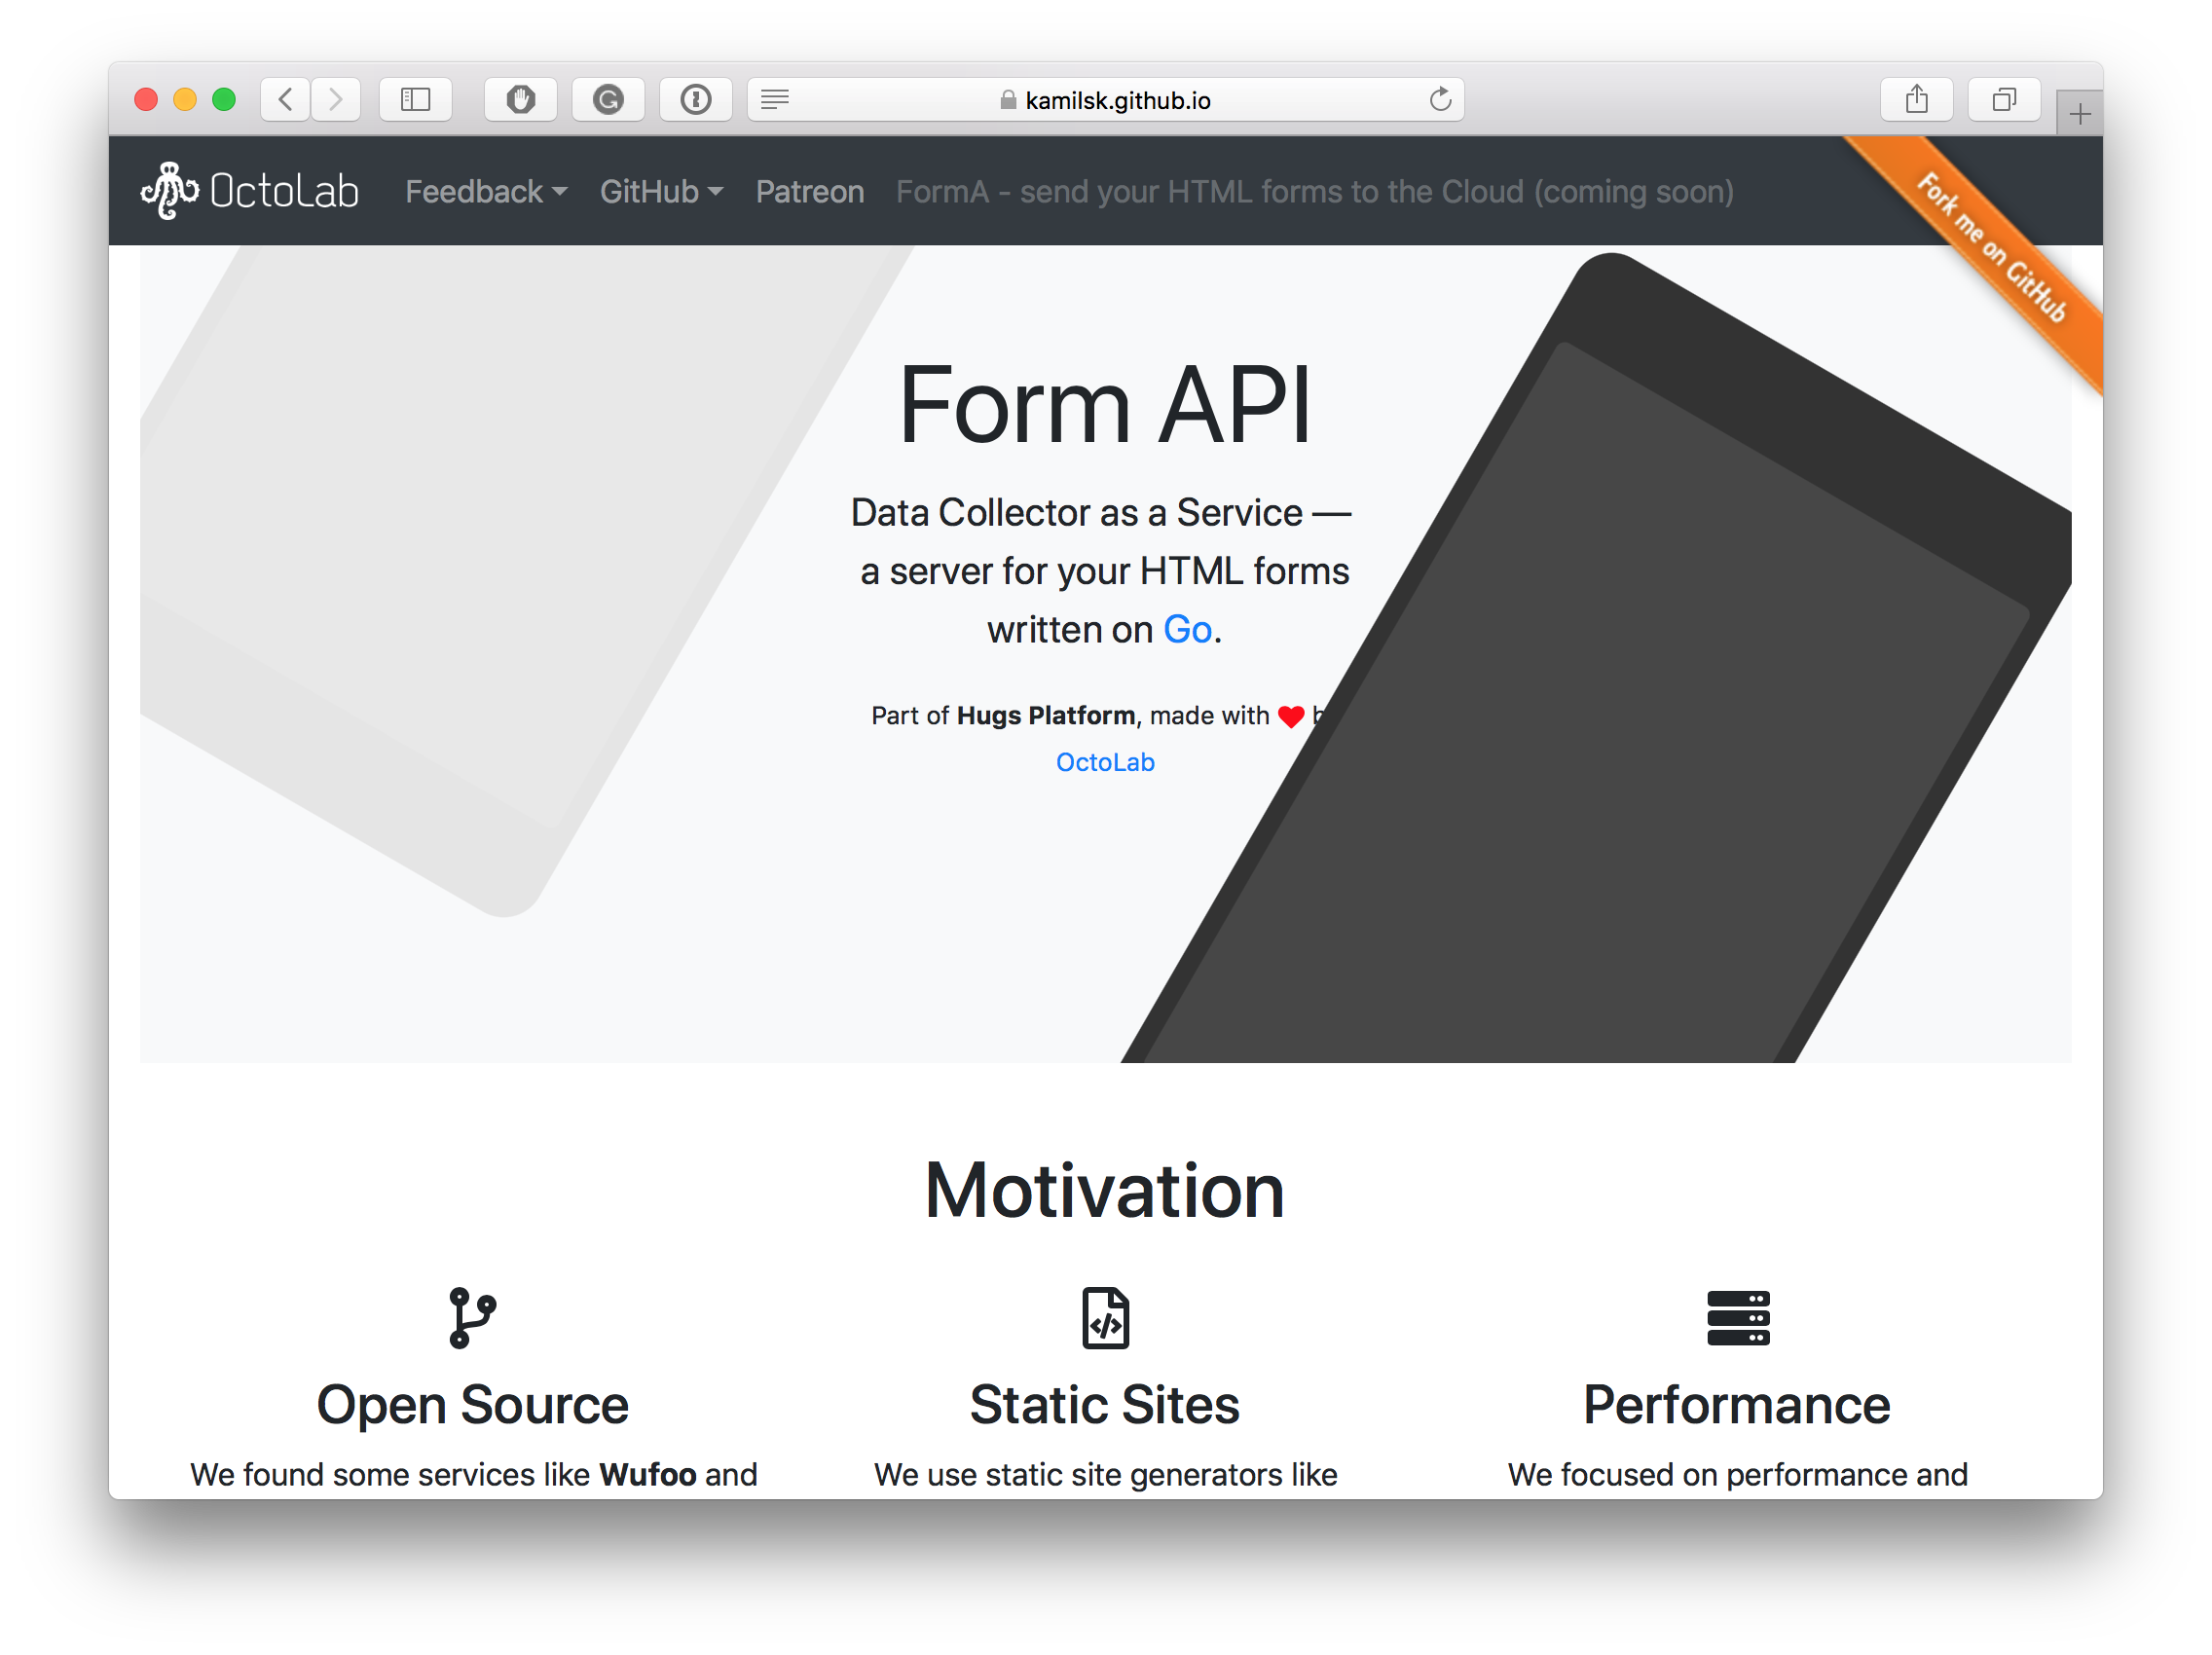 Form API. Data Collector as a Service - a server for your HTML forms written on Go